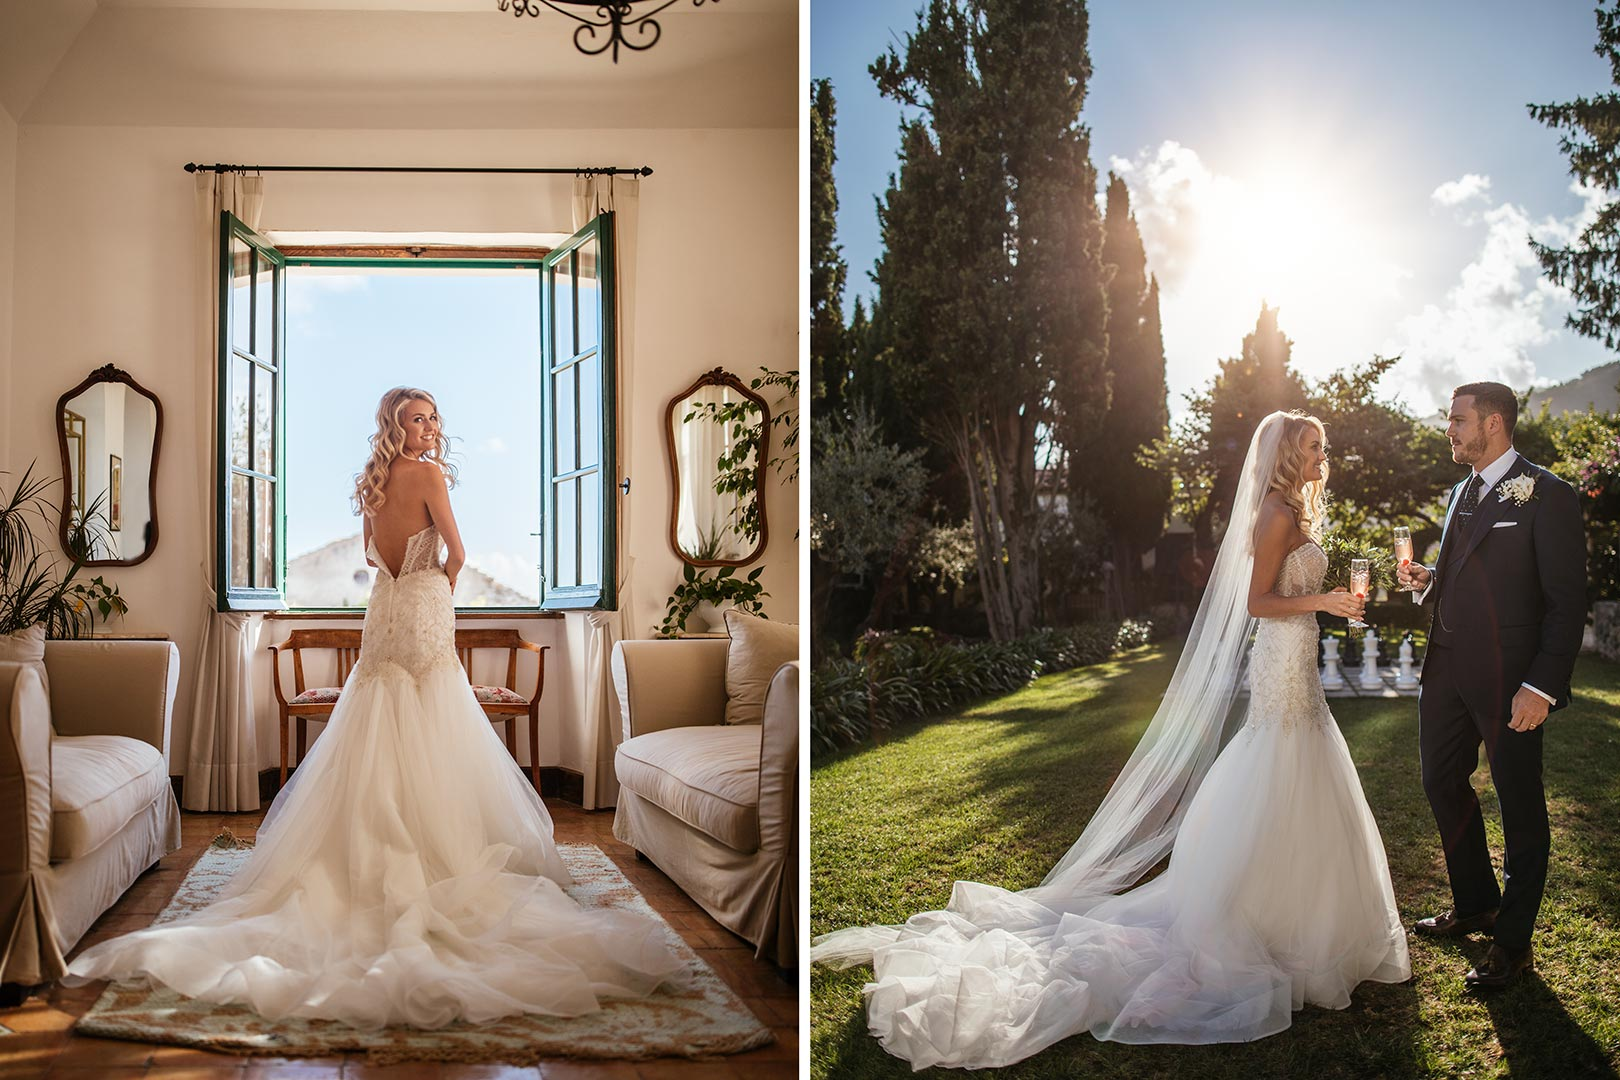 Luxury-wedding-photographer-in-Ravello-Lonna-Graham